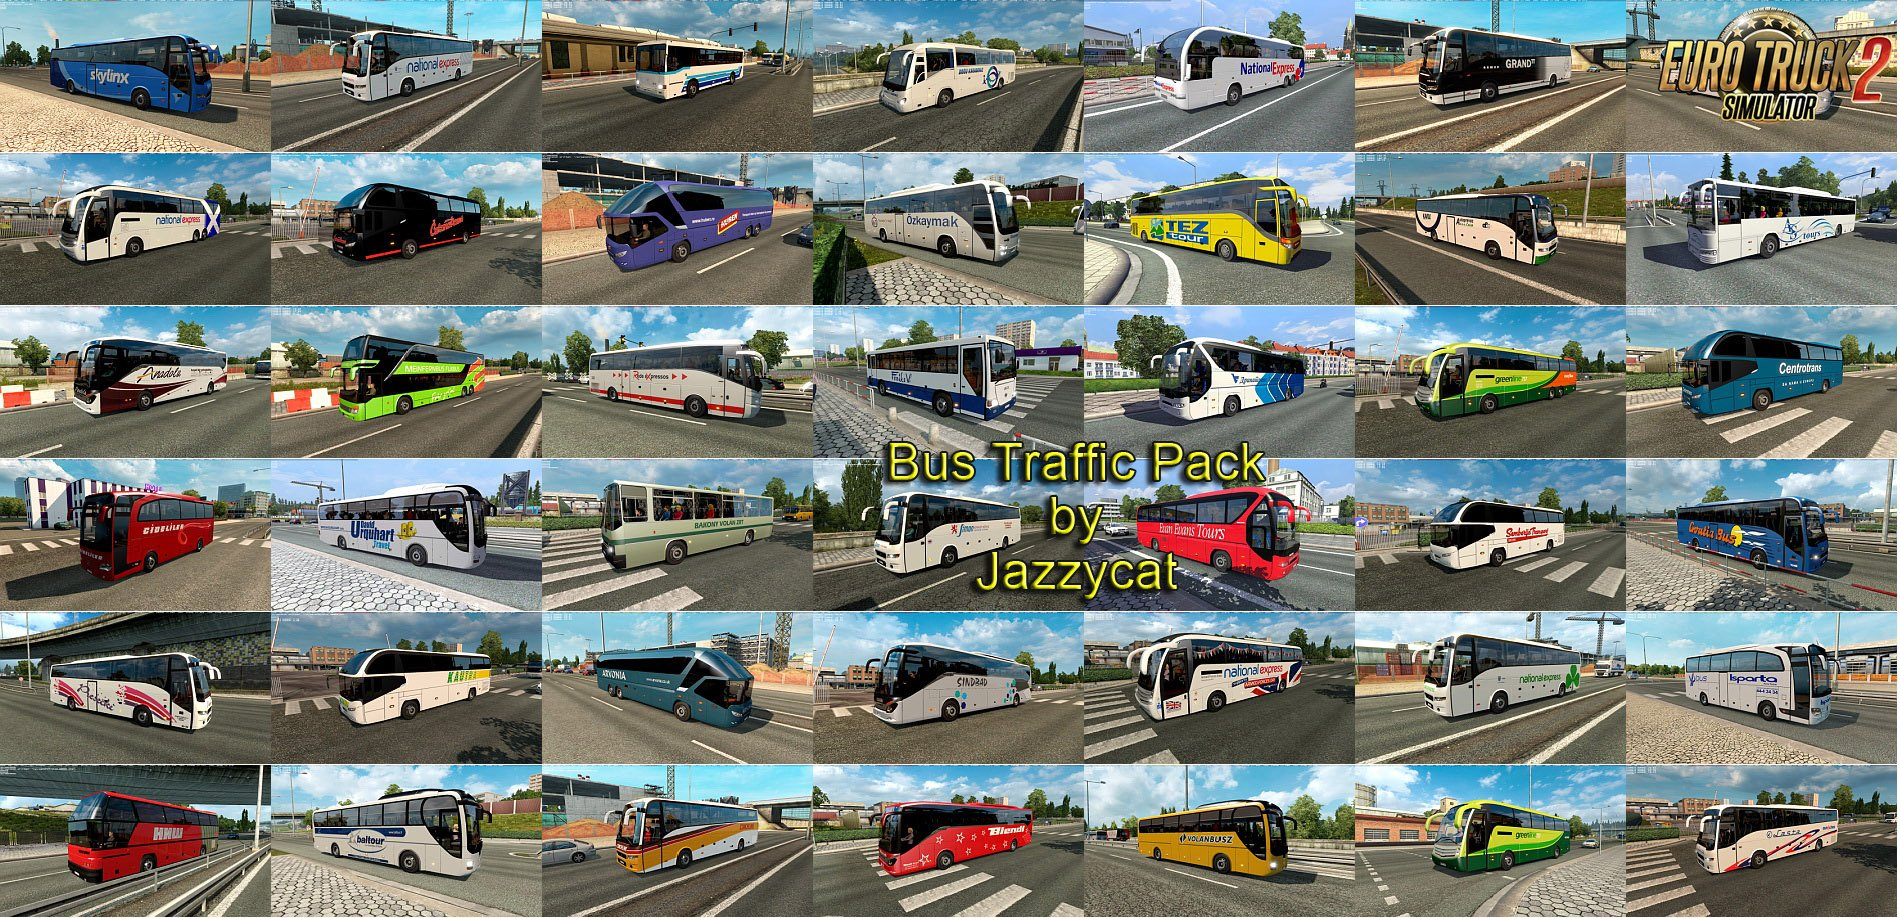 Bus Traffic Pack v4.8 by Jazzycat